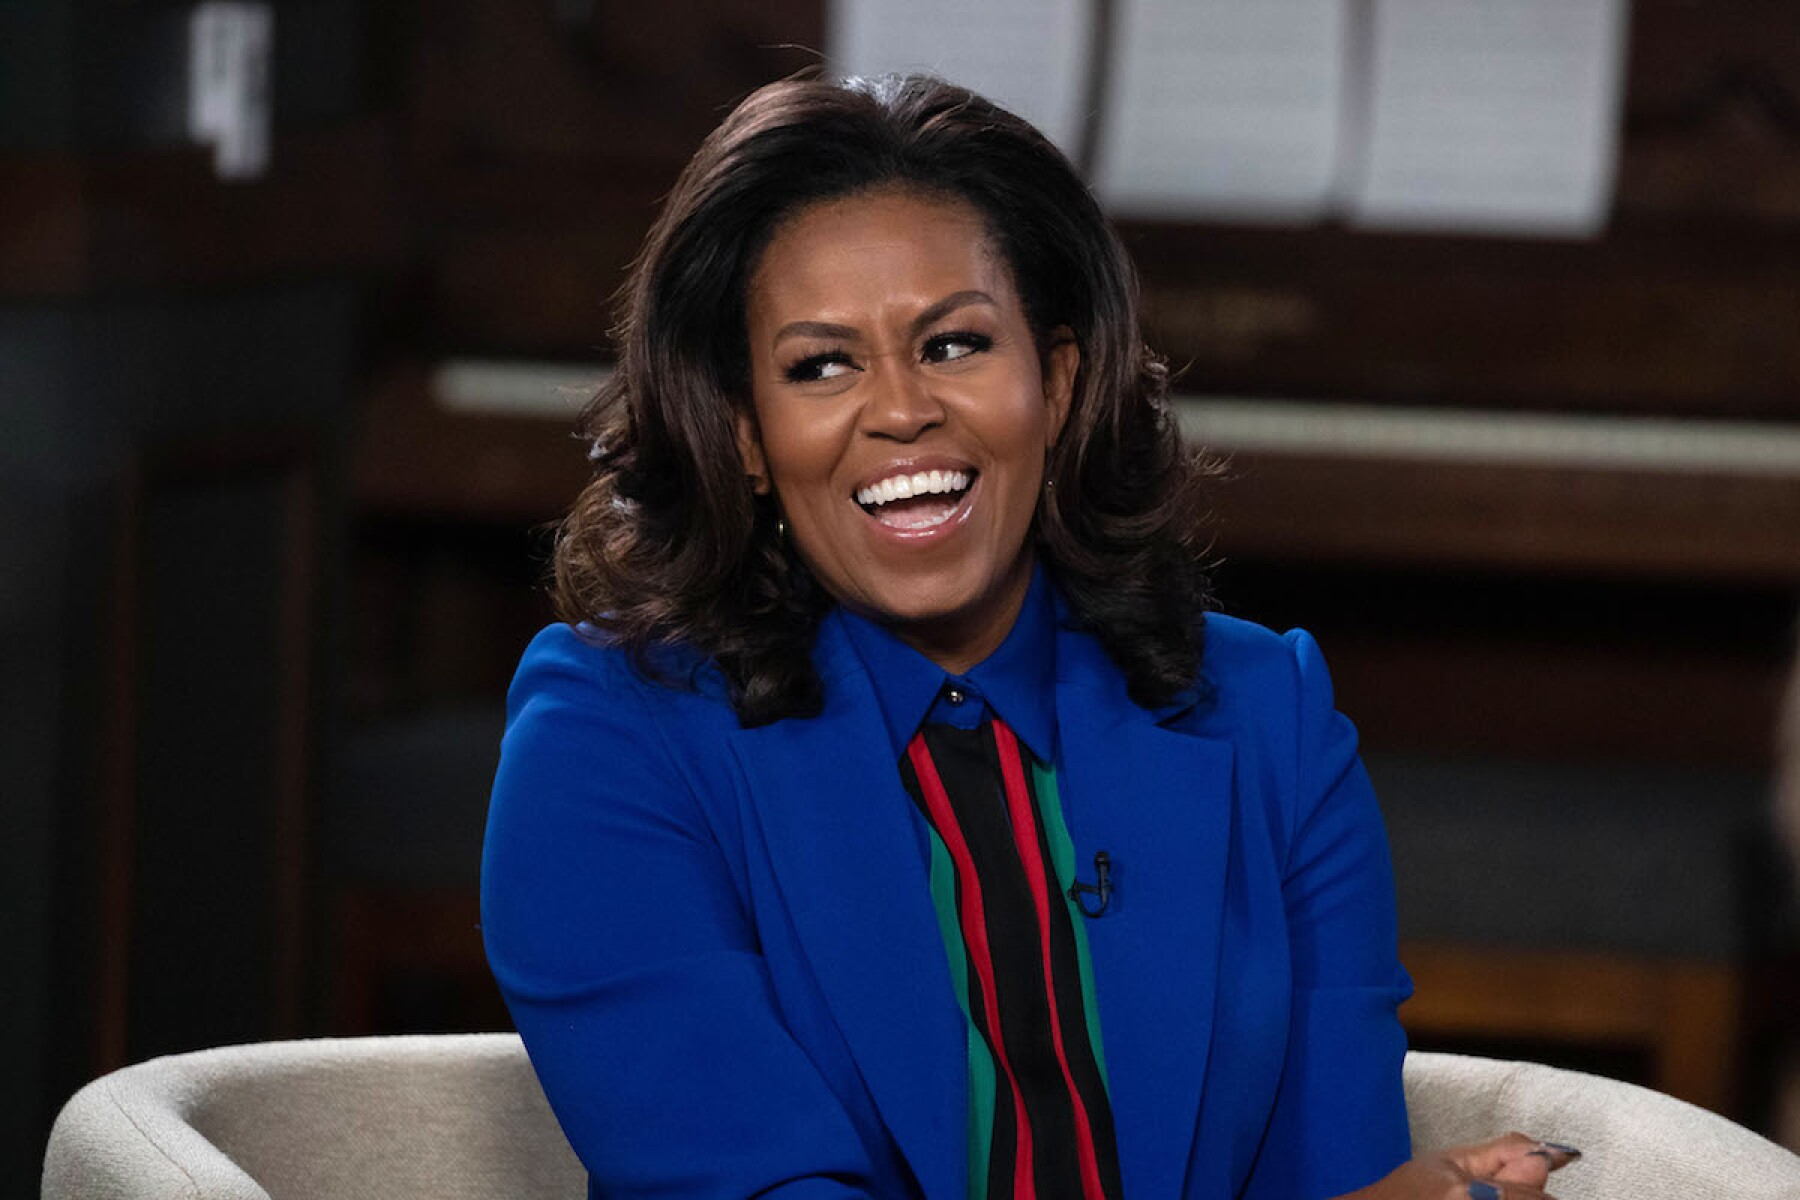 Michelle Obama 'Becoming' book discussion, Austin, USA - 28 Feb 2019